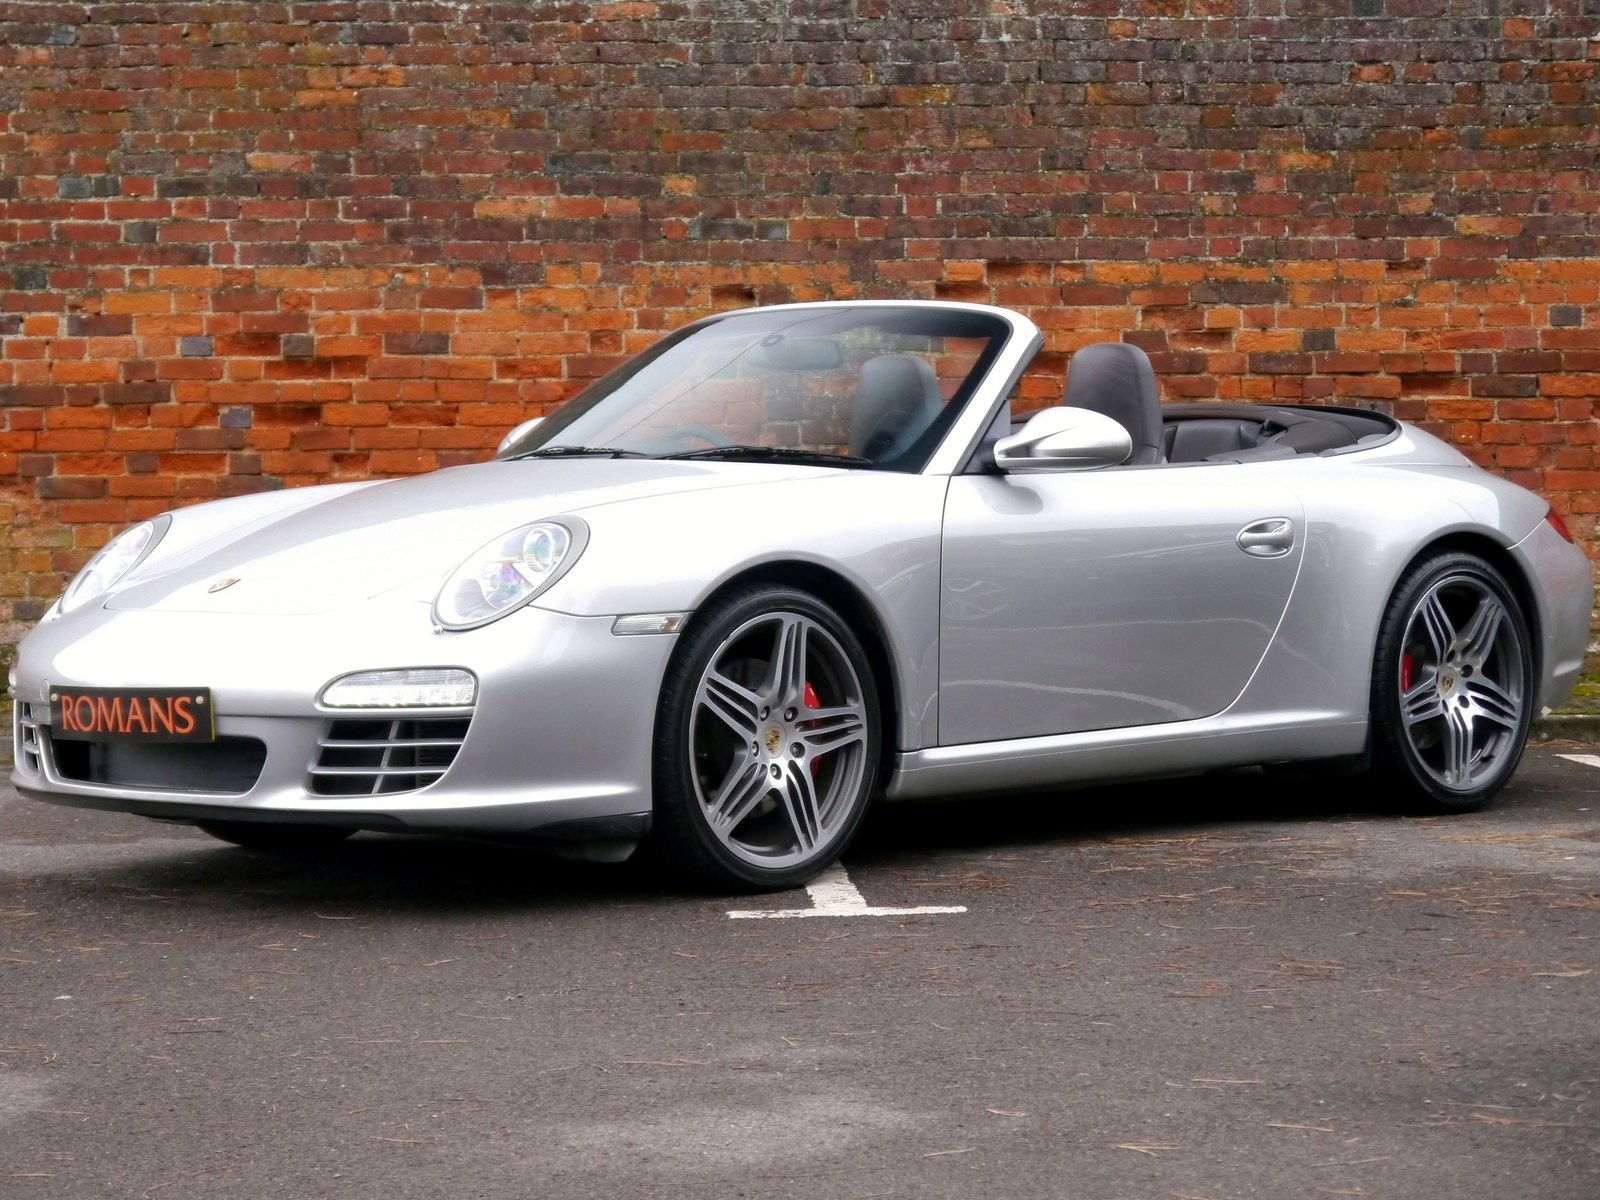 Porsche 911 997 Carrera S Gen Ii Cabriolet Manual Bose Pcm Nav Natural Leather Interior New Price For Sale